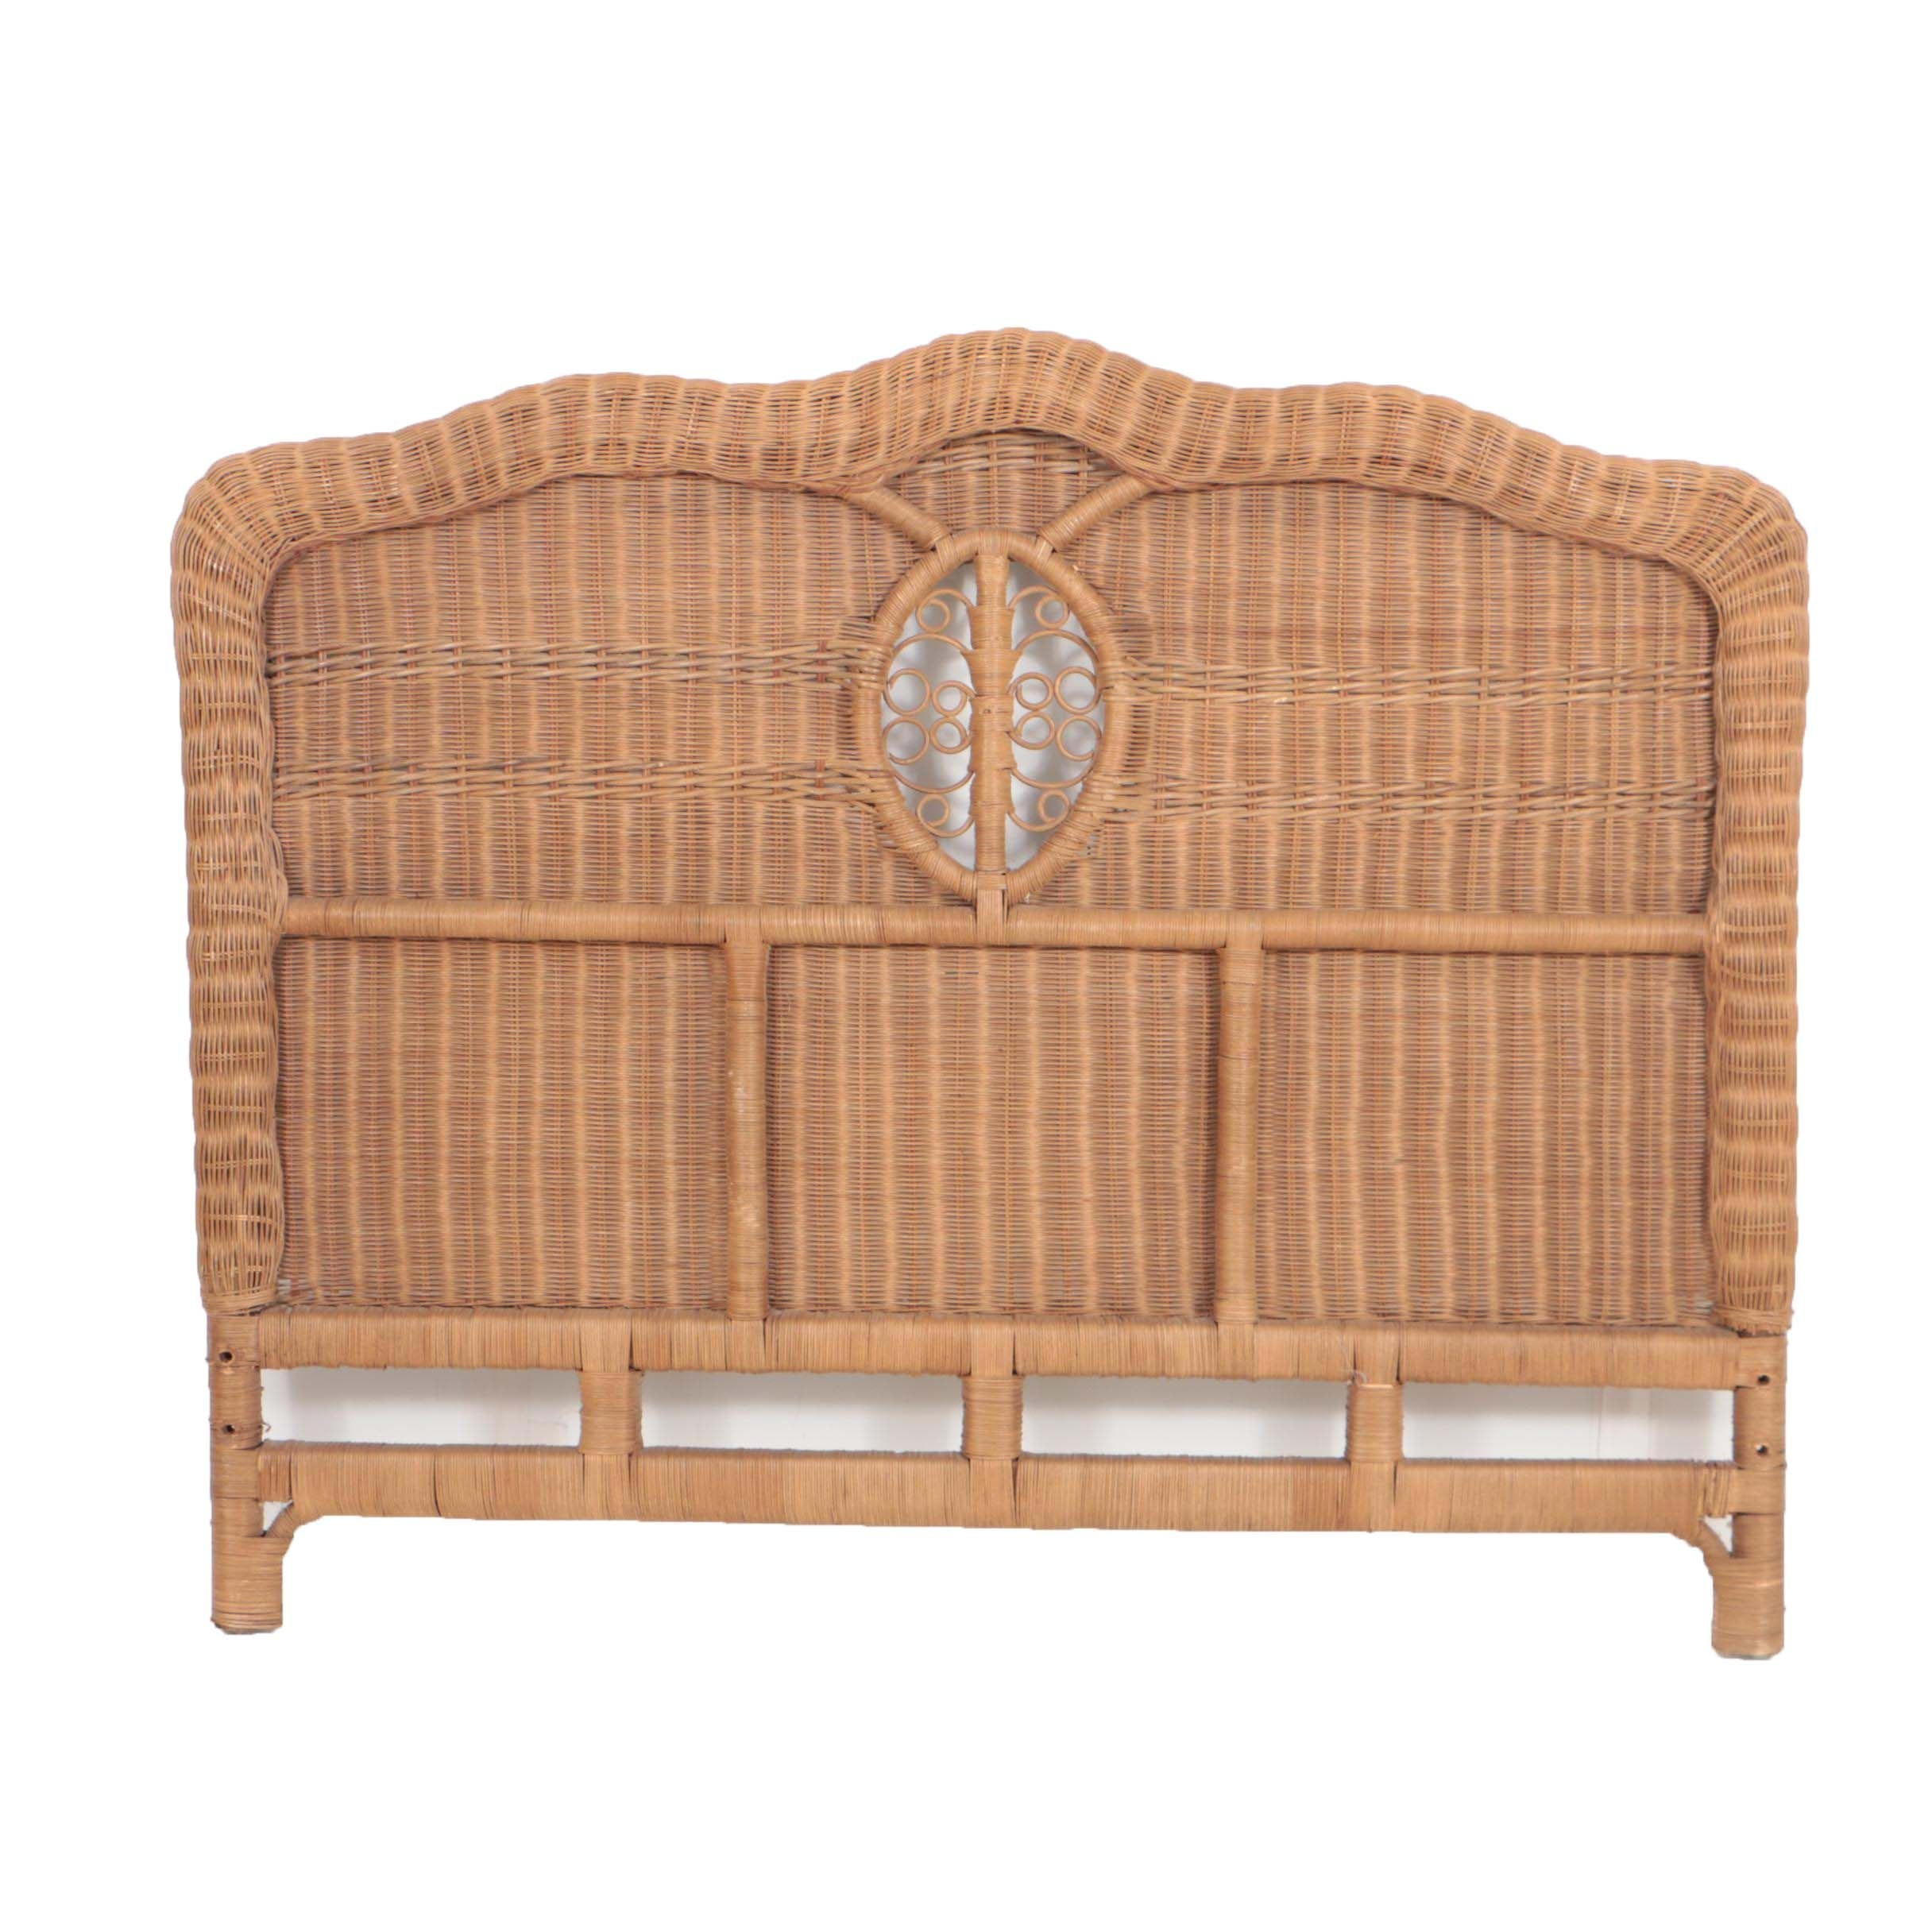 Rattan Wicker Woven Queen-Size Headboard